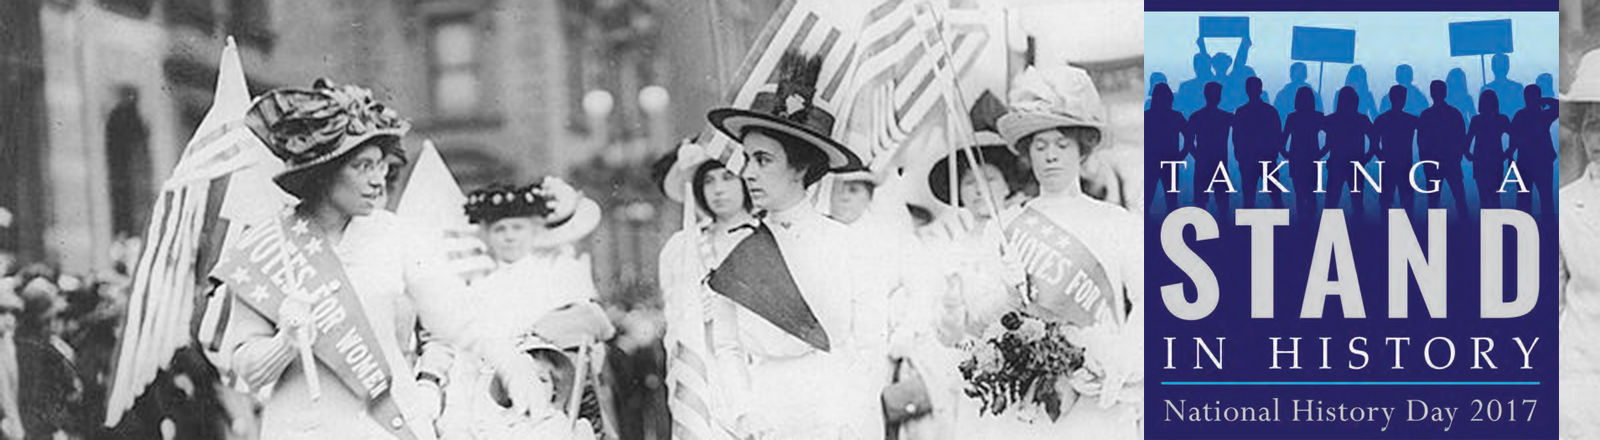 women's suffrage history day